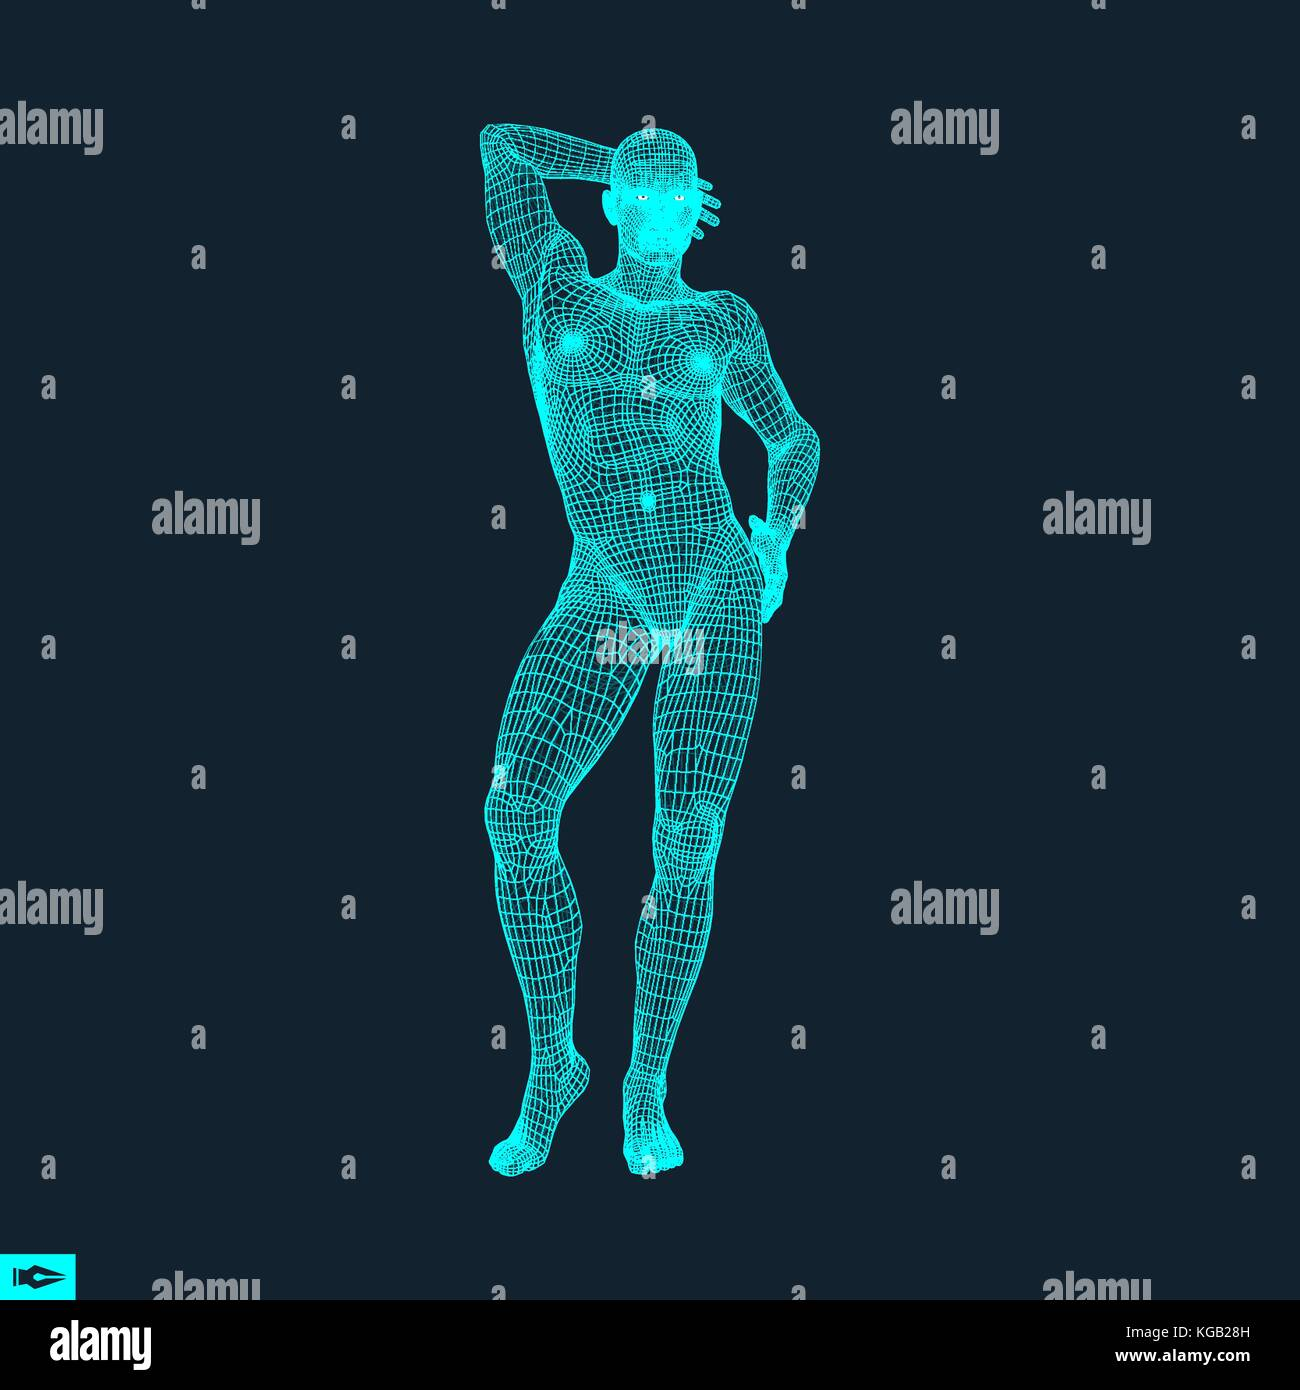 Man Stands on his Feet. Man Thinks about Something. Polygonal Design. Human Body Model. 3D Vector Illustration. - Stock Vector